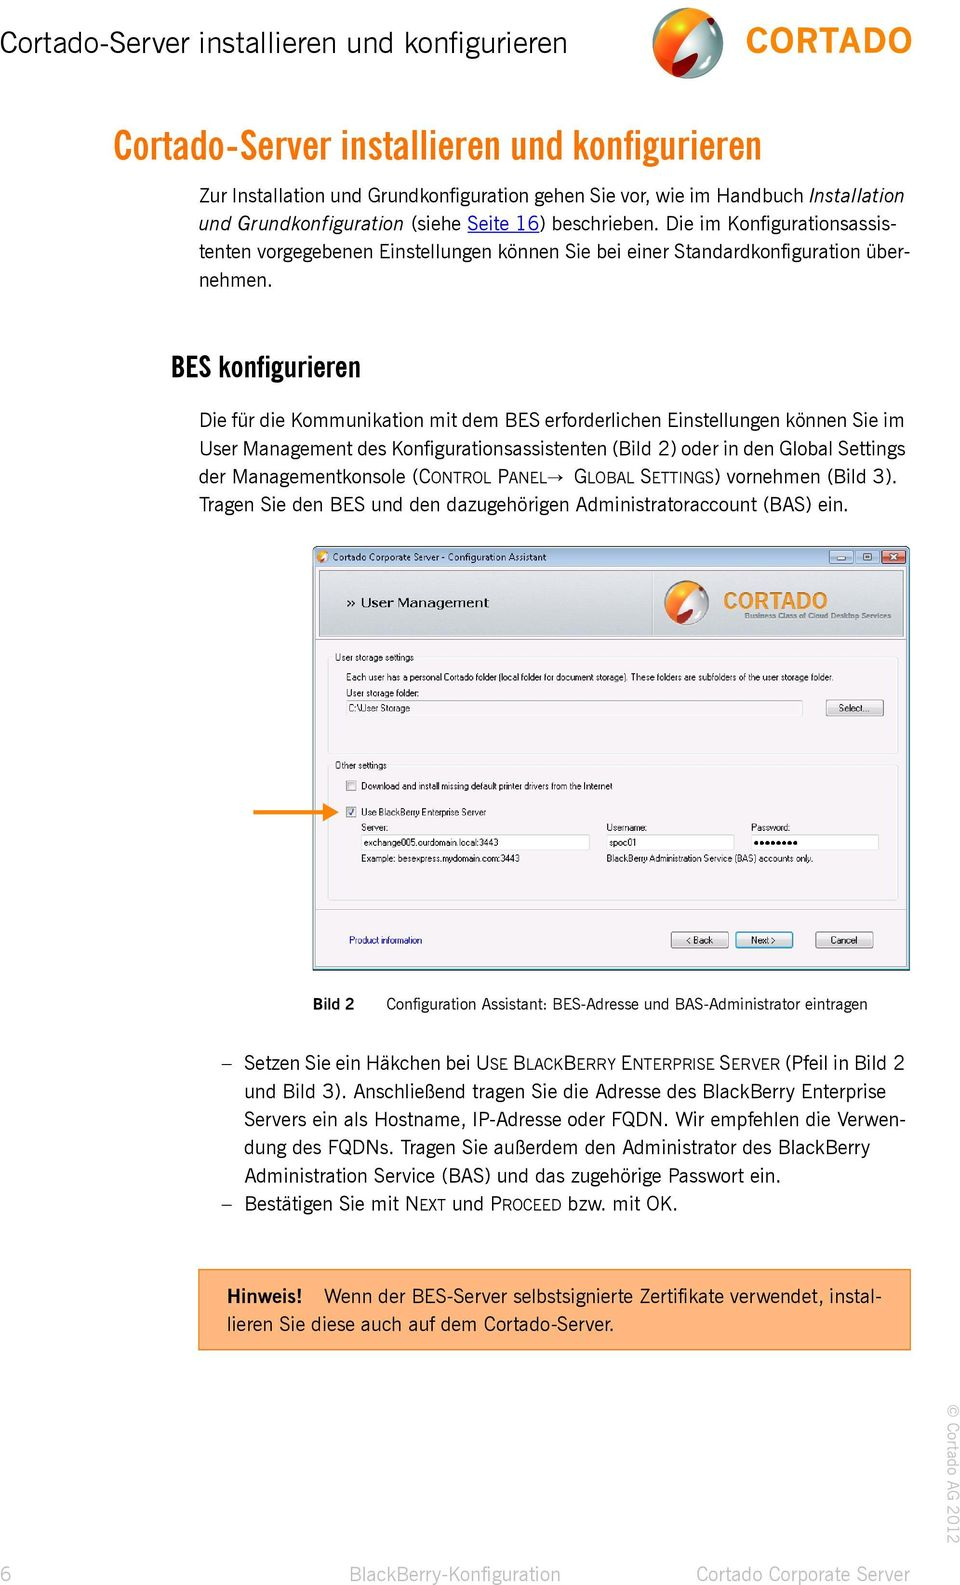 BES konfigurieren Die für die Kommunikation mit dem BES erforderlichen Einstellungen können Sie im User Management des Konfigurationsassistenten (Bild 2) oder in den Global Settings der